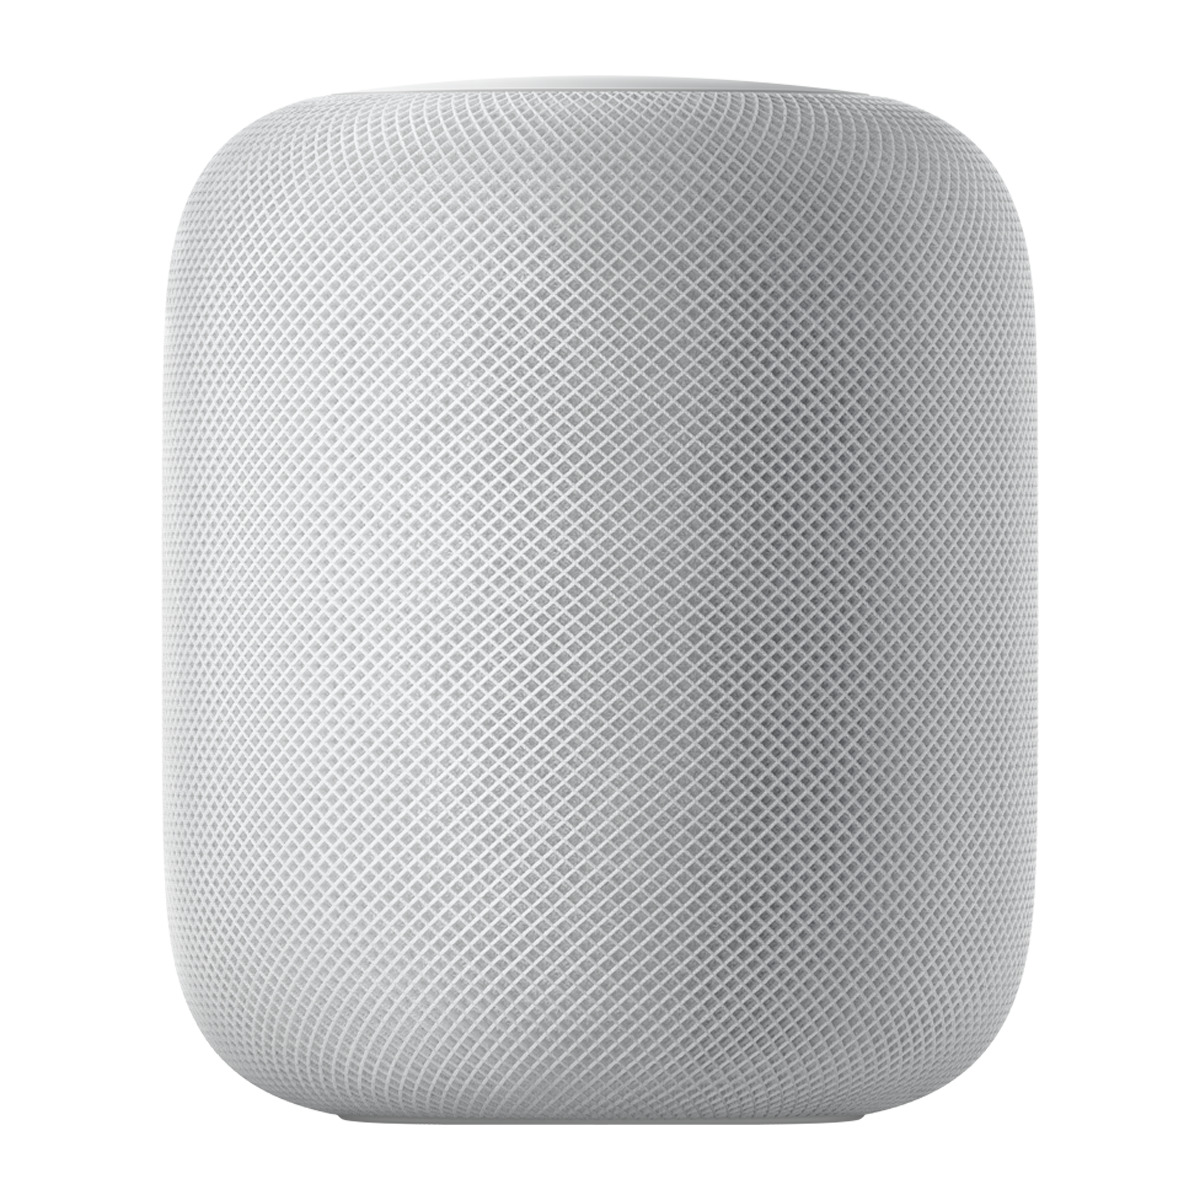 Altavoz inteligente Apple HomePod Blanco Bluetooth Apple Music y Siri